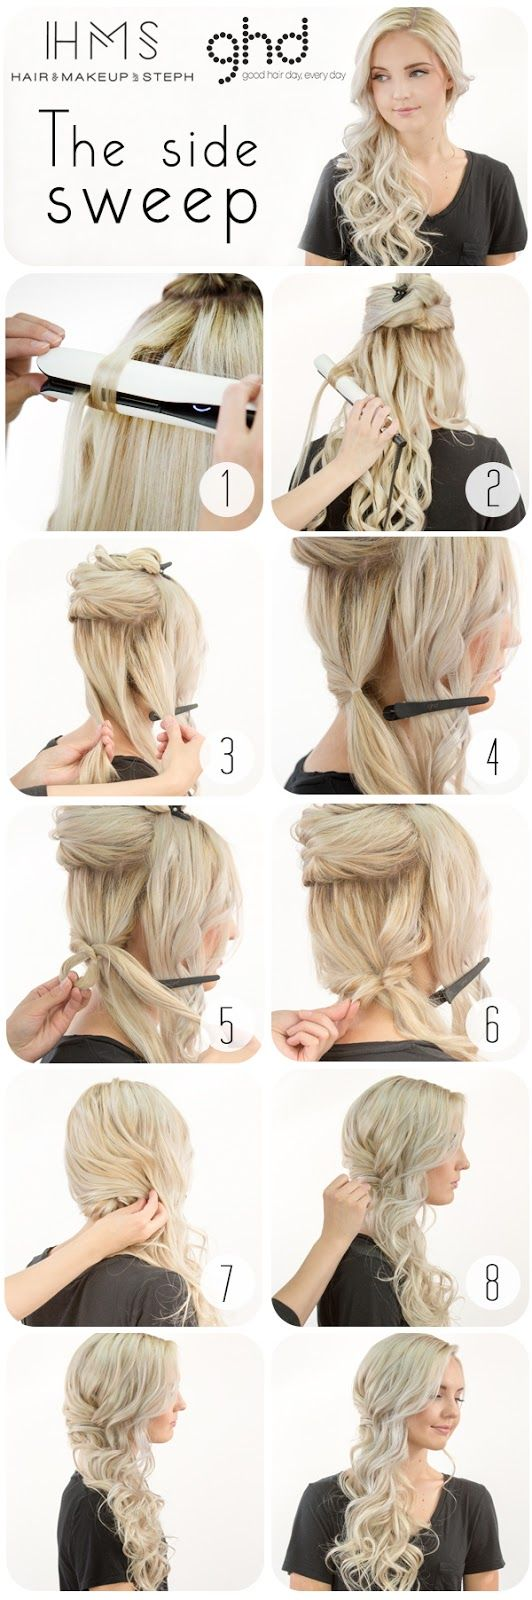 Best 25 easy formal hairstyles ideas on pinterest updo diy hair and make up by steph how to bridal side swept hair solutioingenieria Choice Image